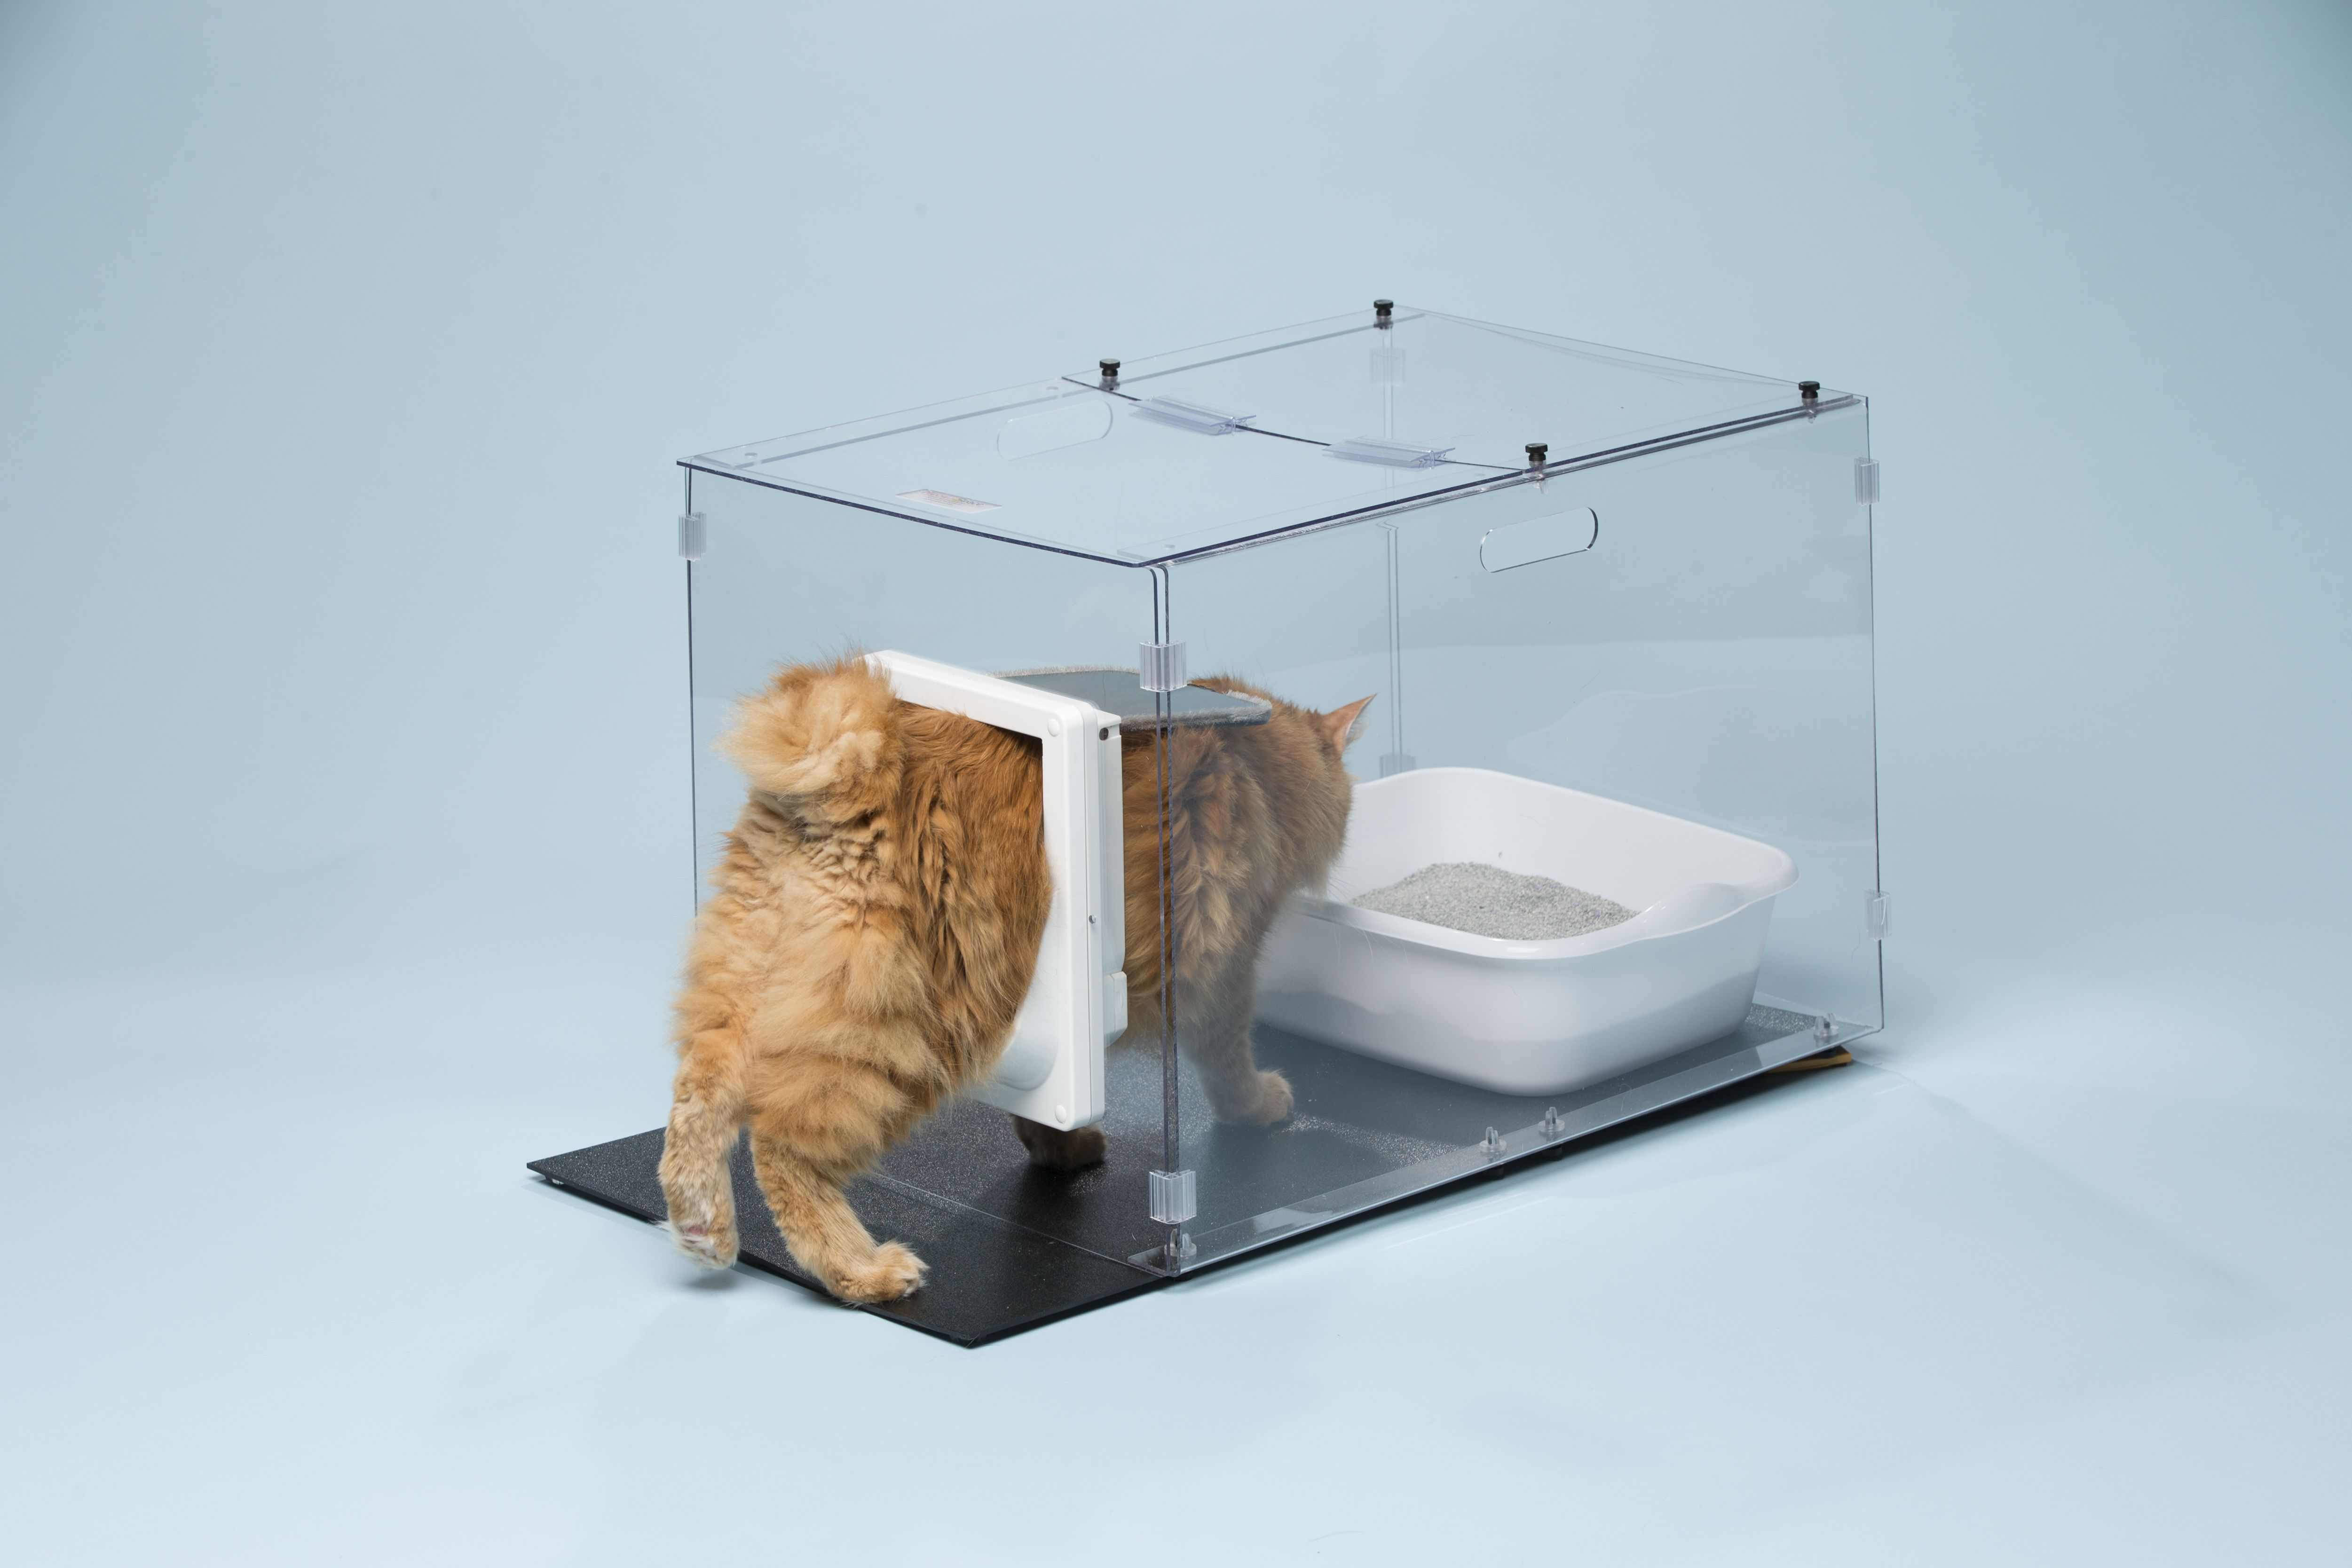 Keeping the dog out of the litter box! Cat has a microchp